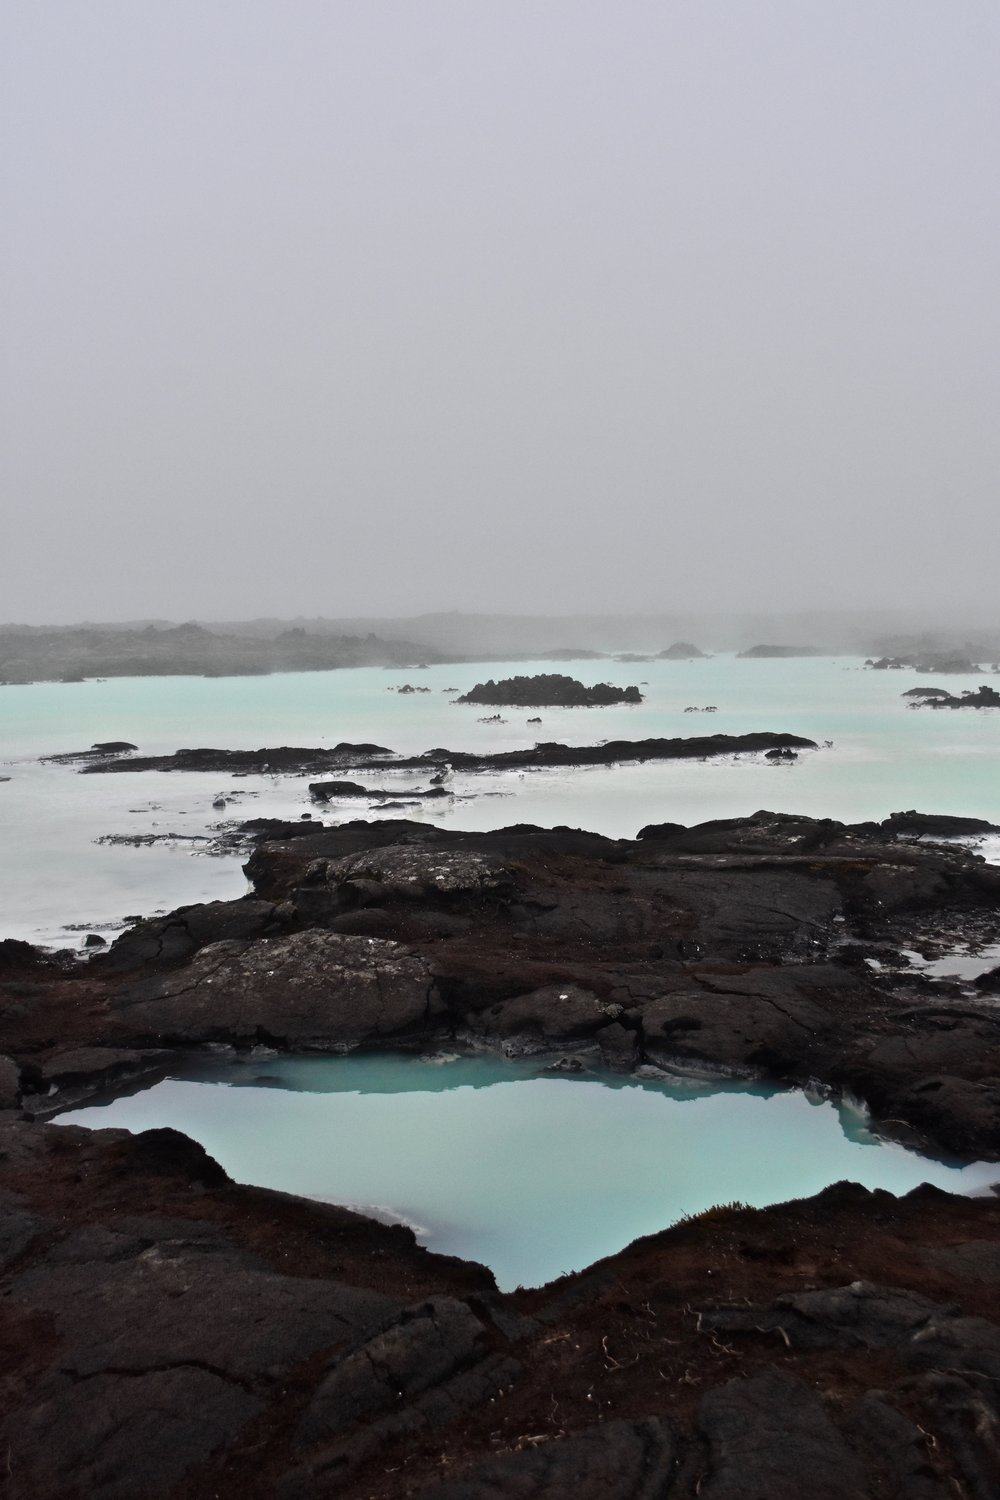 The Blue Lagoon near Reykjavik, Iceland